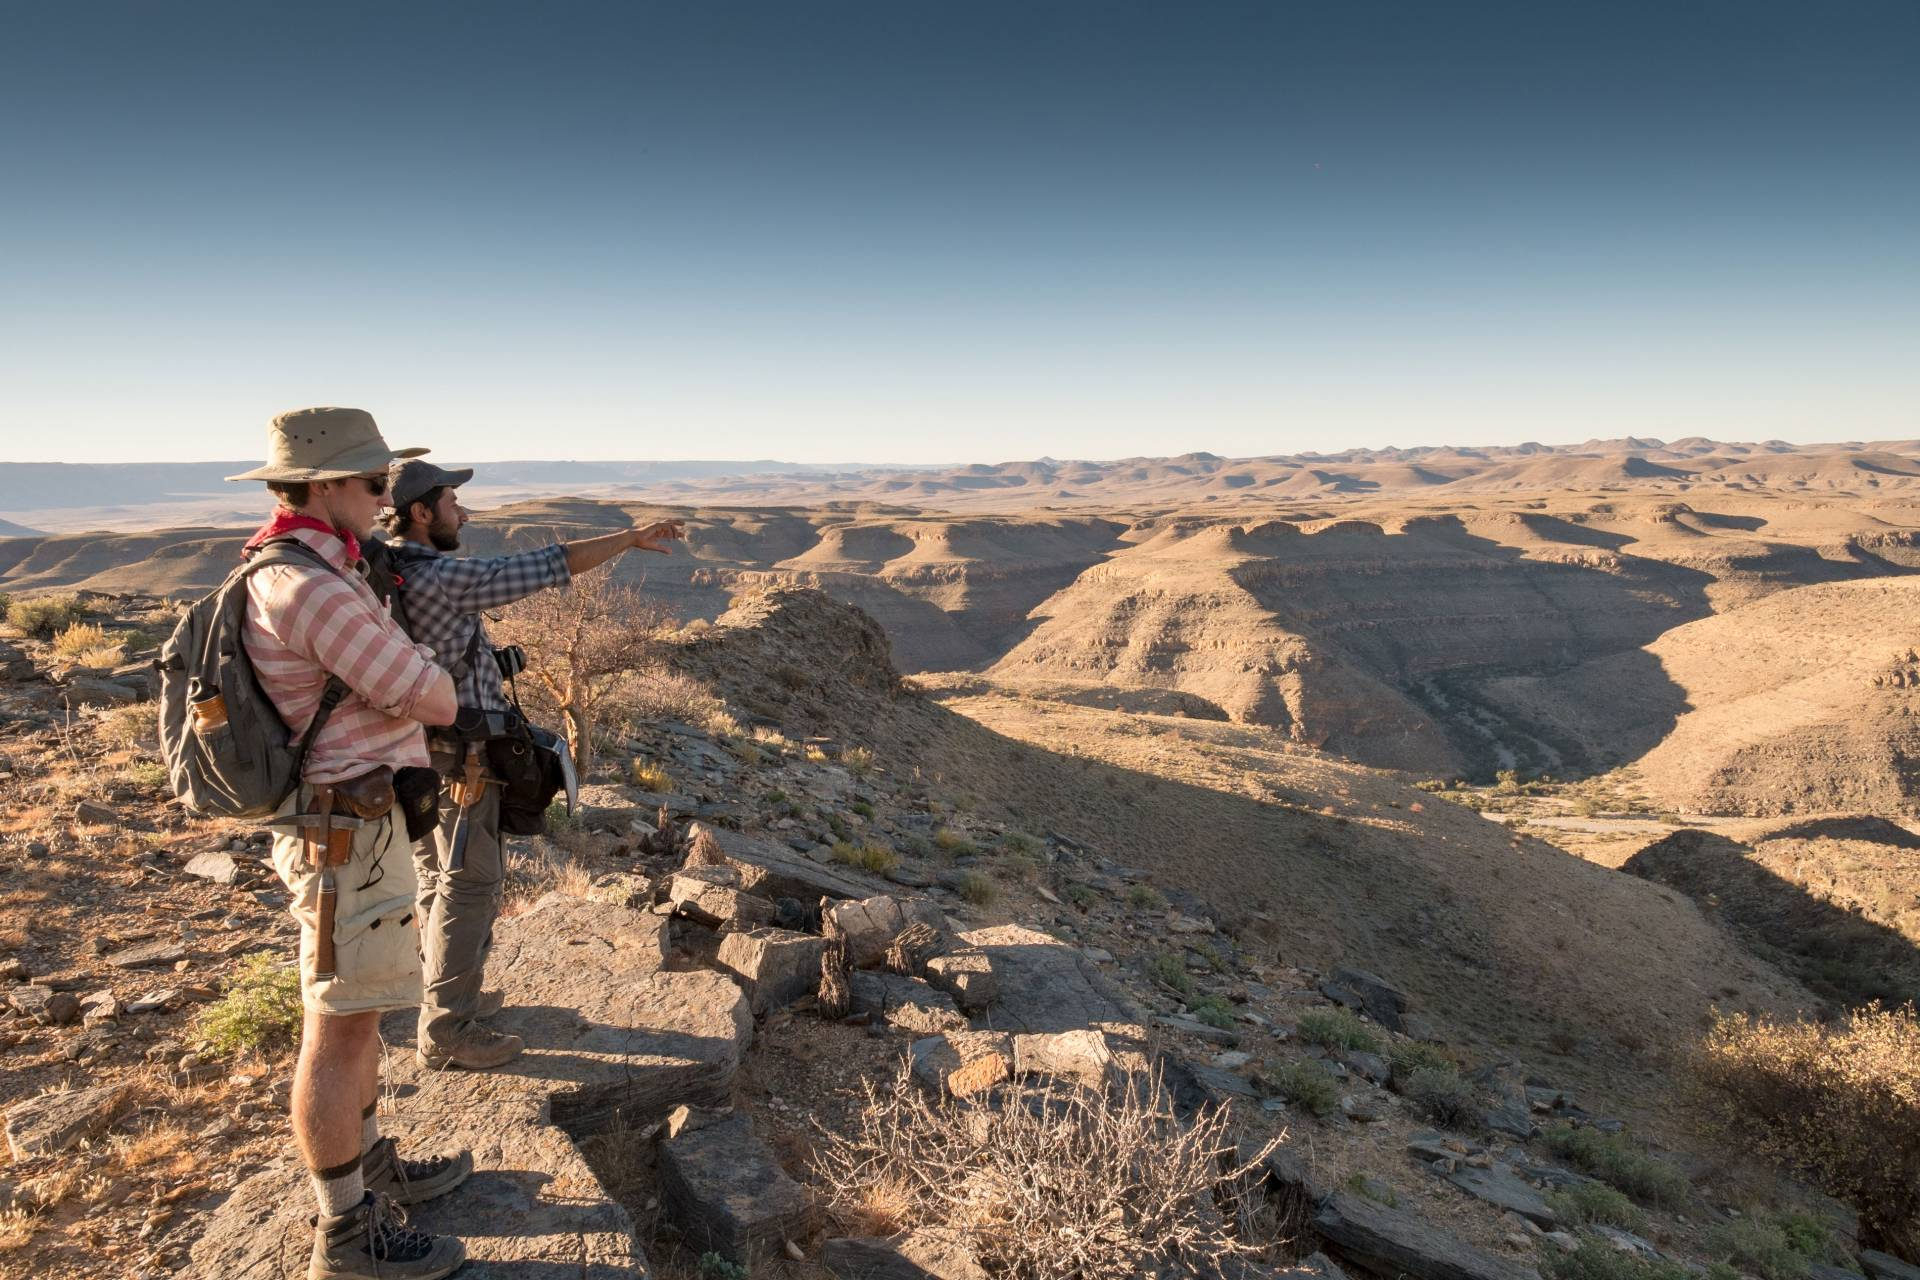 Graduate Students overlooking Zebra River Farm, Namibia